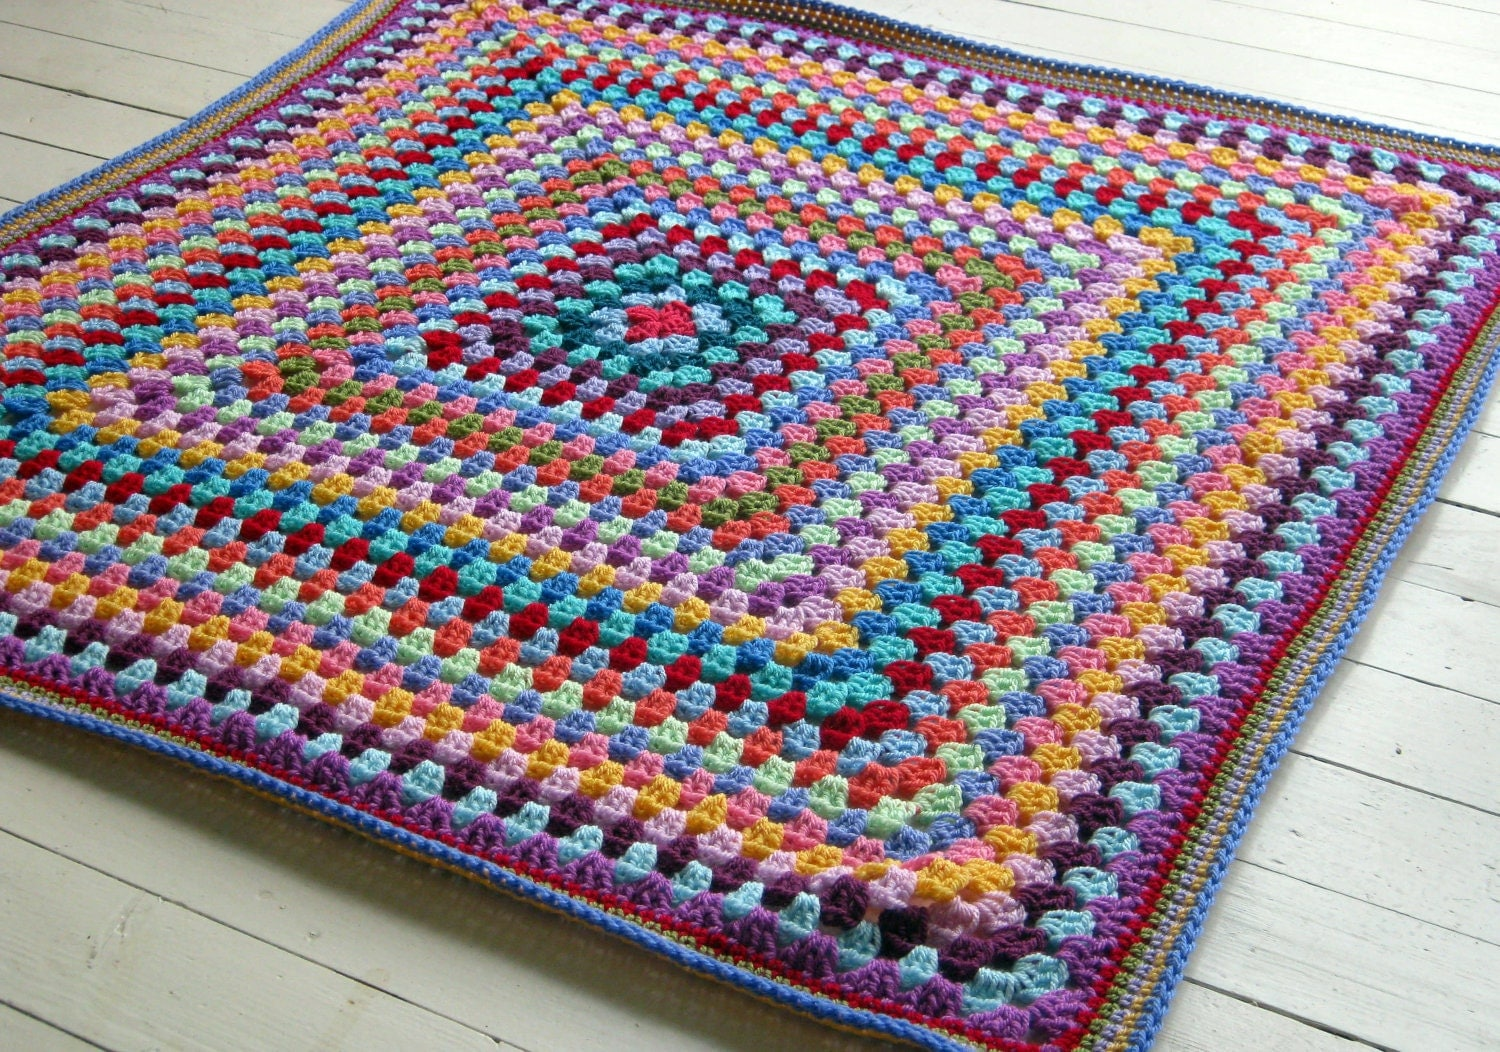 Crocheting Granny Square Blanket : Granny Square Crochet Blanket Rainbow Colors by Thesunroomuk